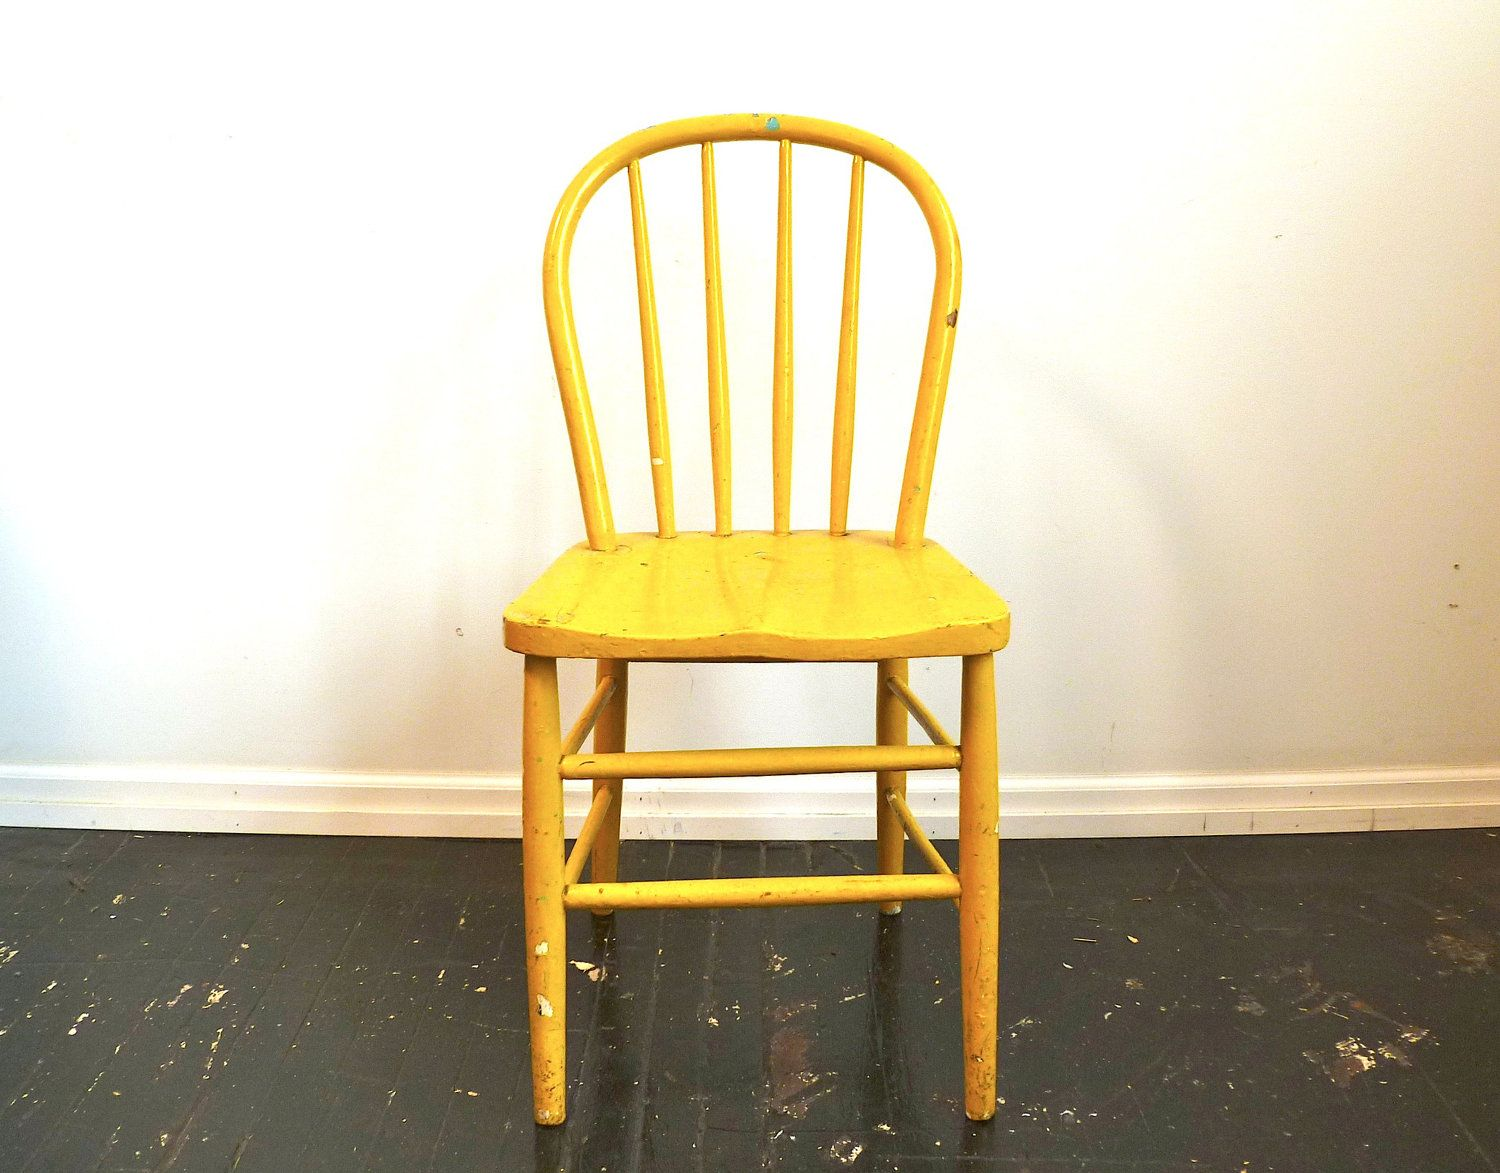 Sunshine Yellow a hot color Paint my Chair Pinterest Chair